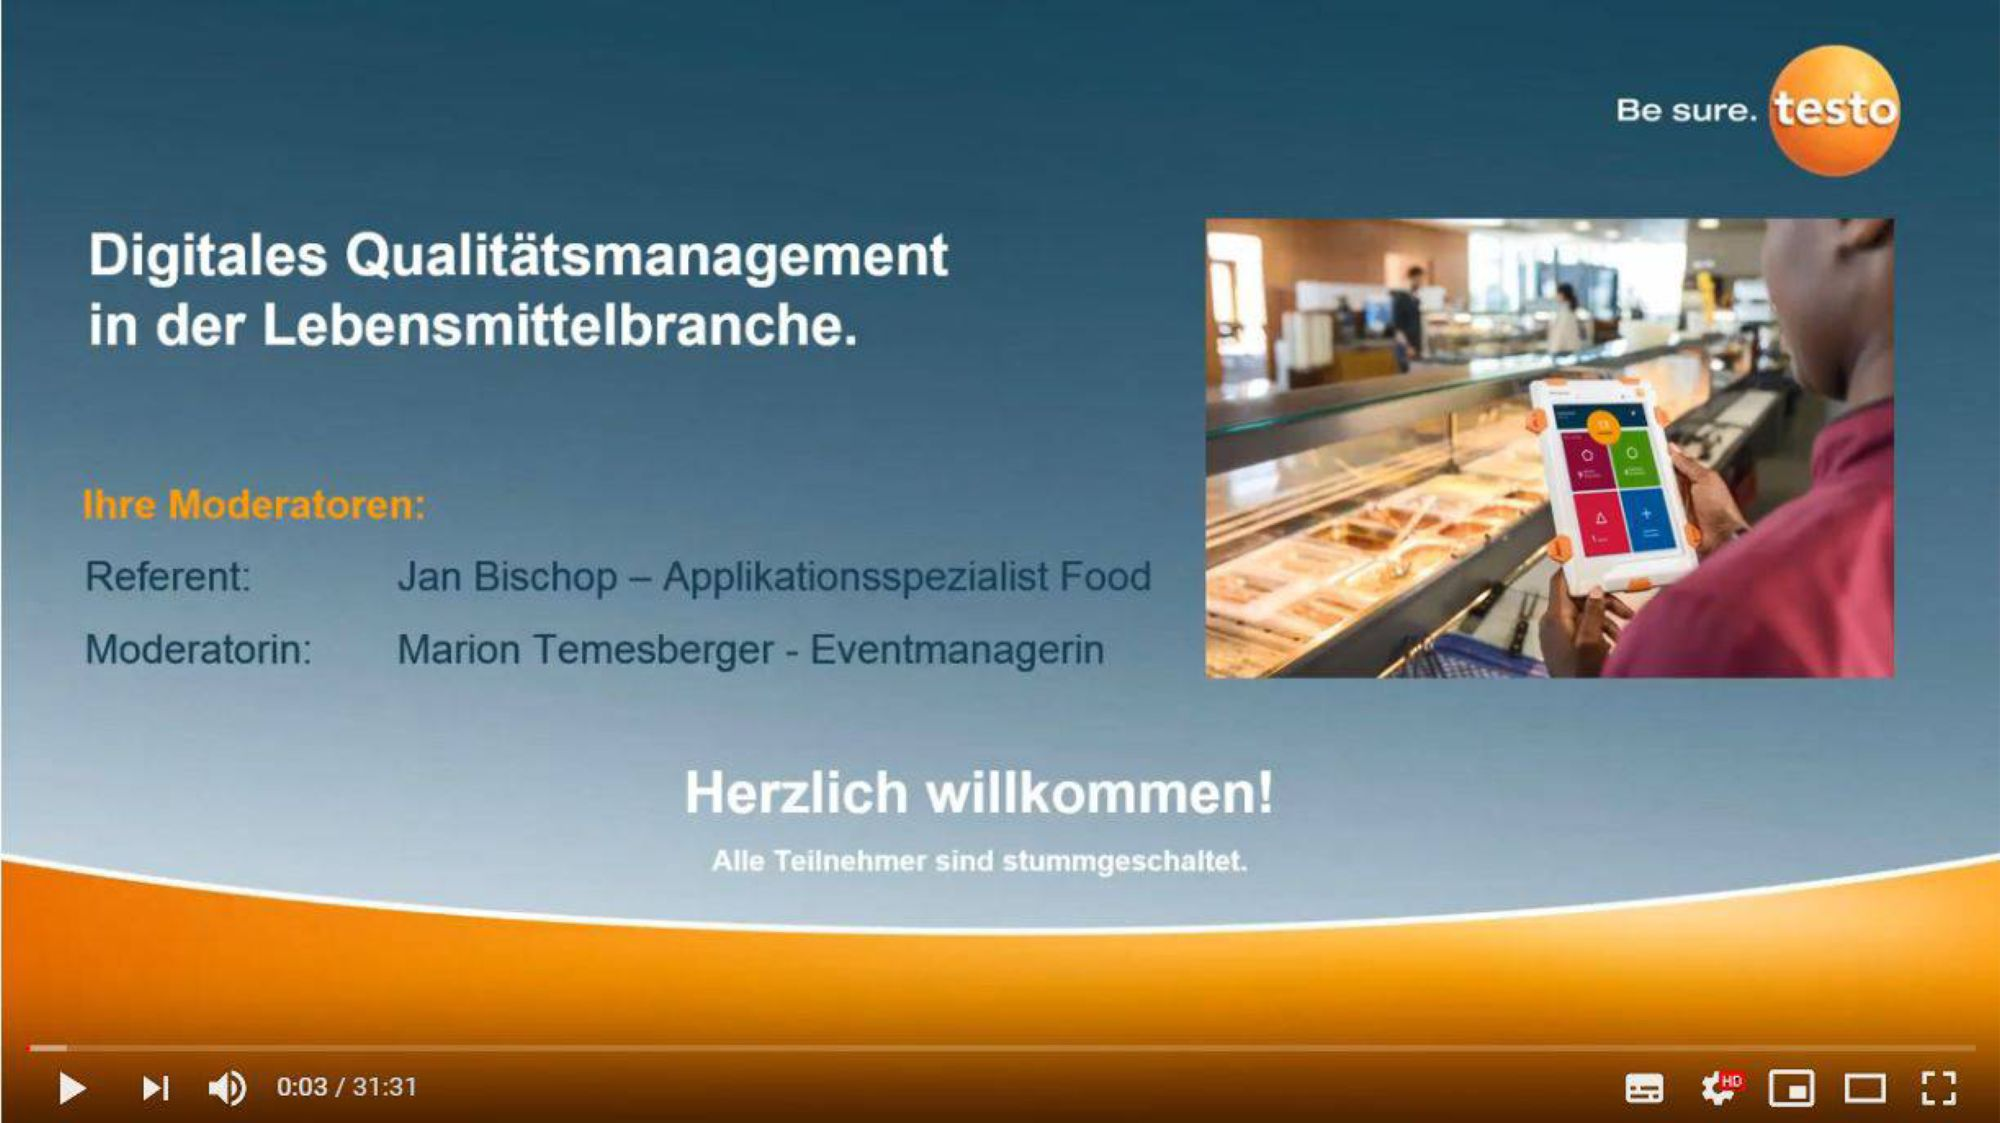 teaser-video-solution-webinar-digitales-qualitaetsmanagement.JPG